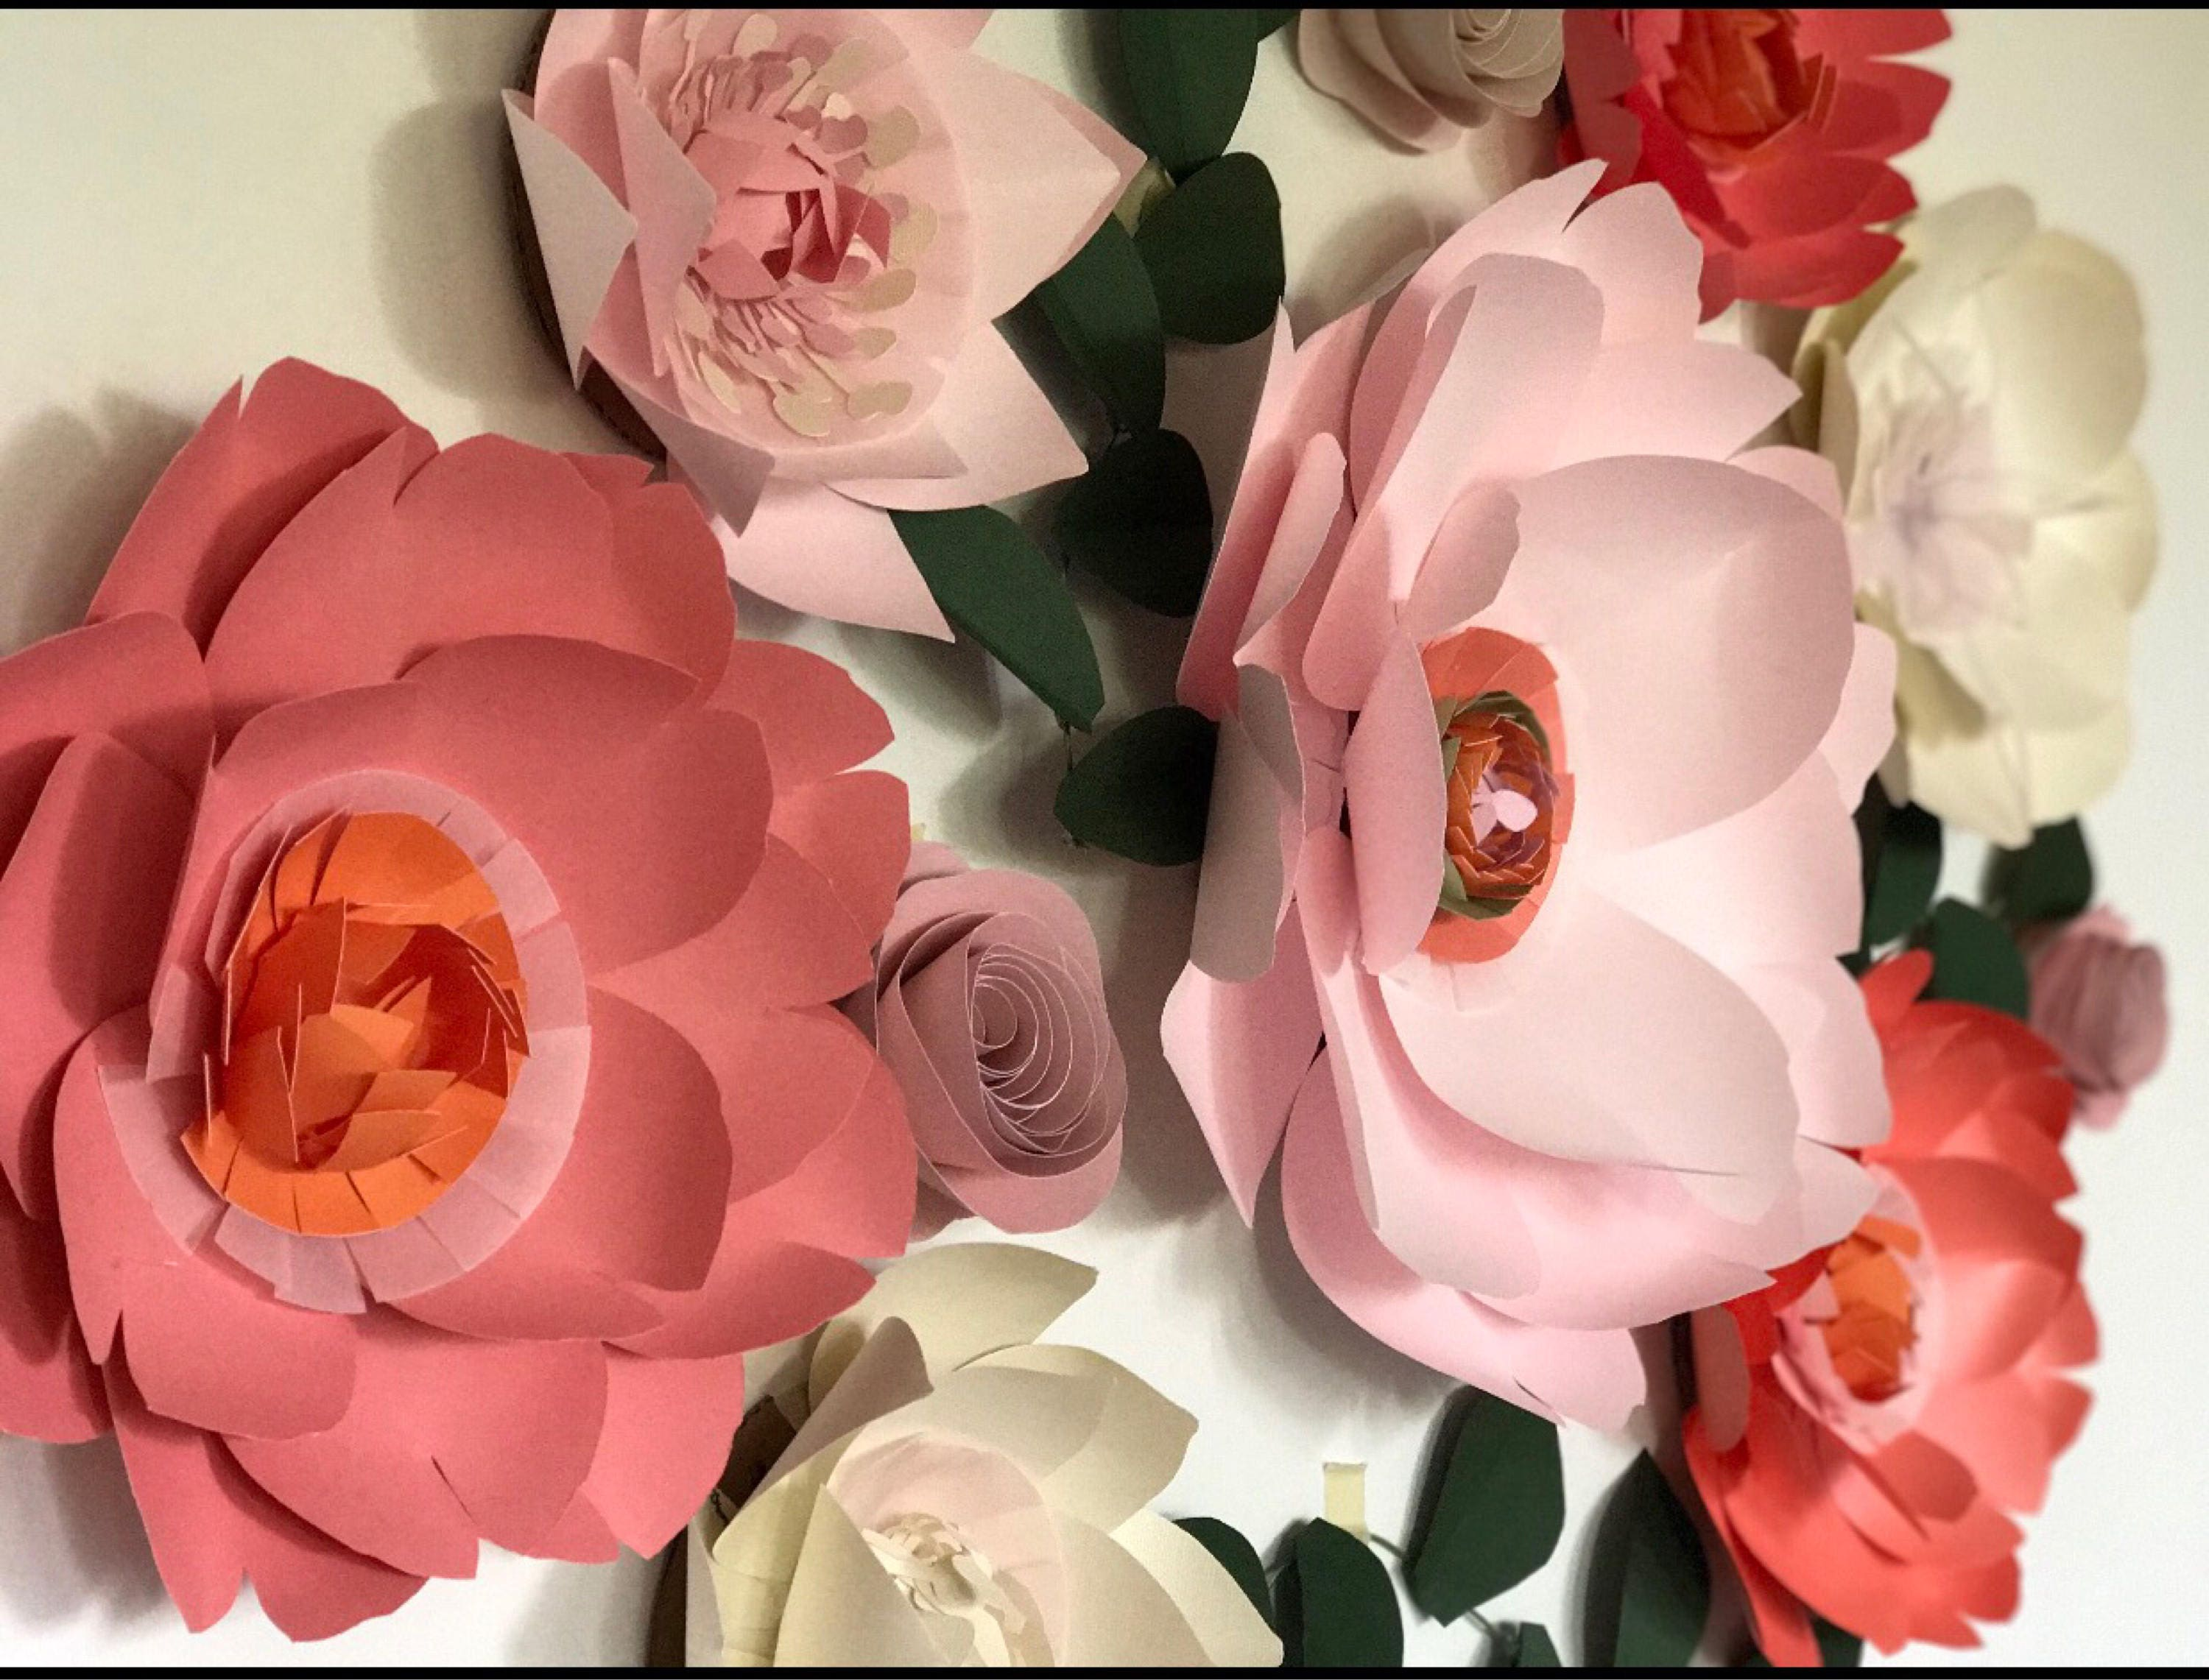 Paper flowers wall decor coral paper flowers above the crib decor coral paper flowers wall decor wedding gallery photo gallery photo mightylinksfo